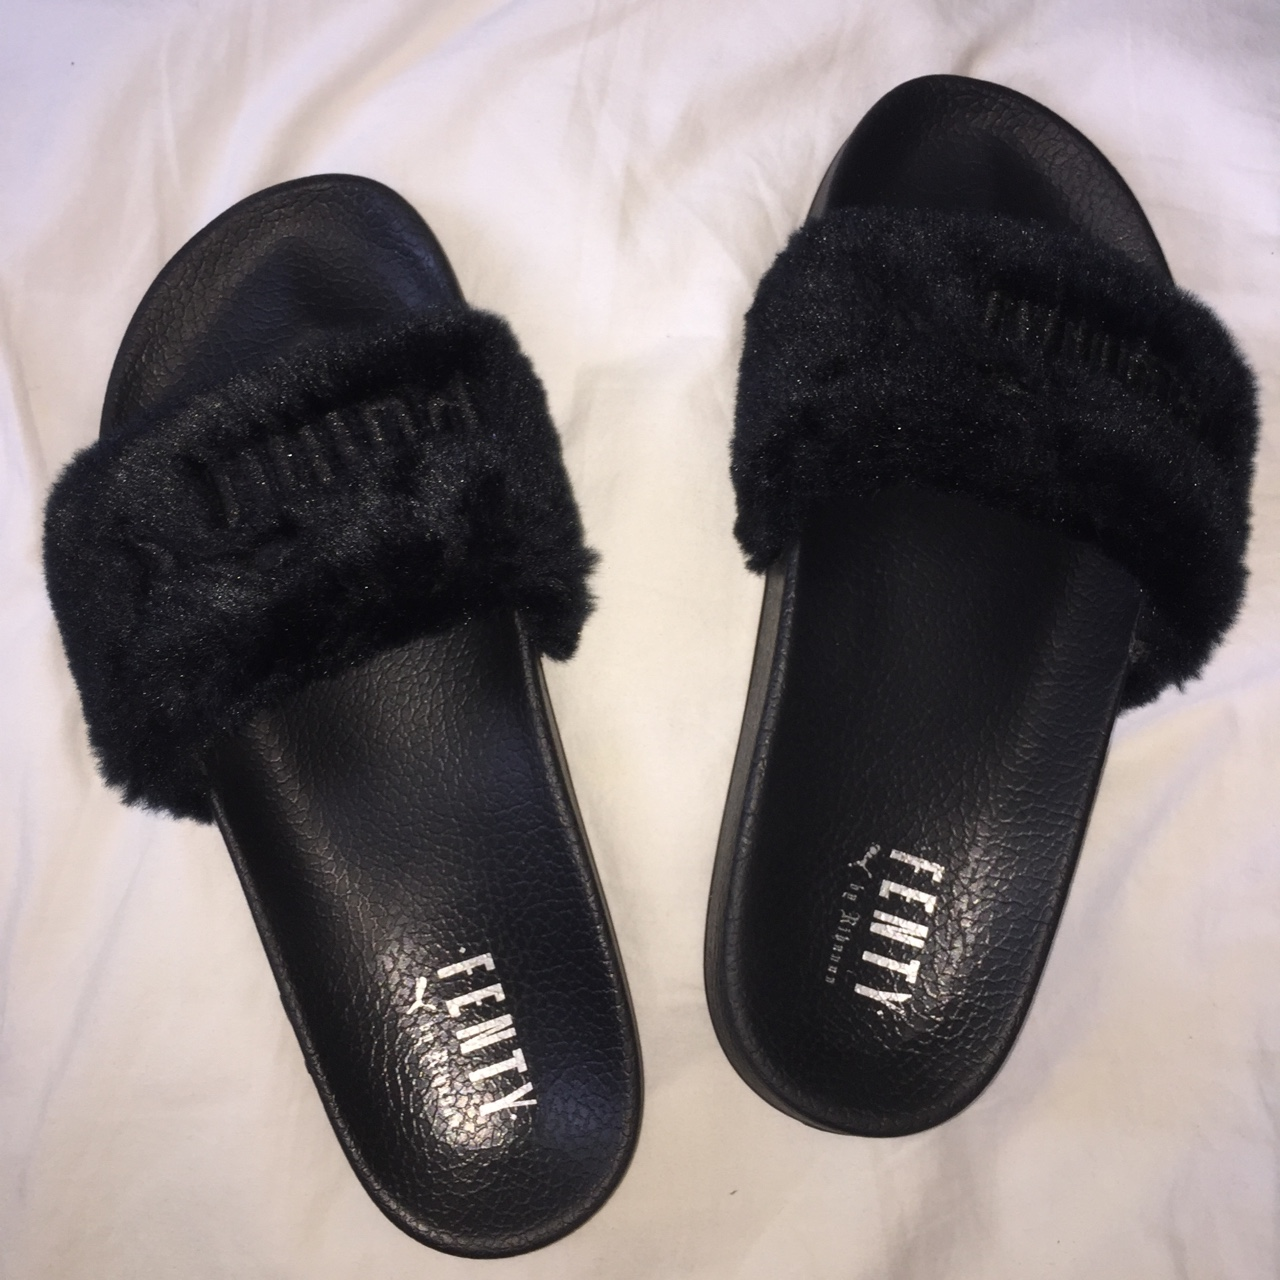 cheap for discount ad8f3 f3487 Fenty x Puma by Rihanna Faux fur slides in black.... - Depop